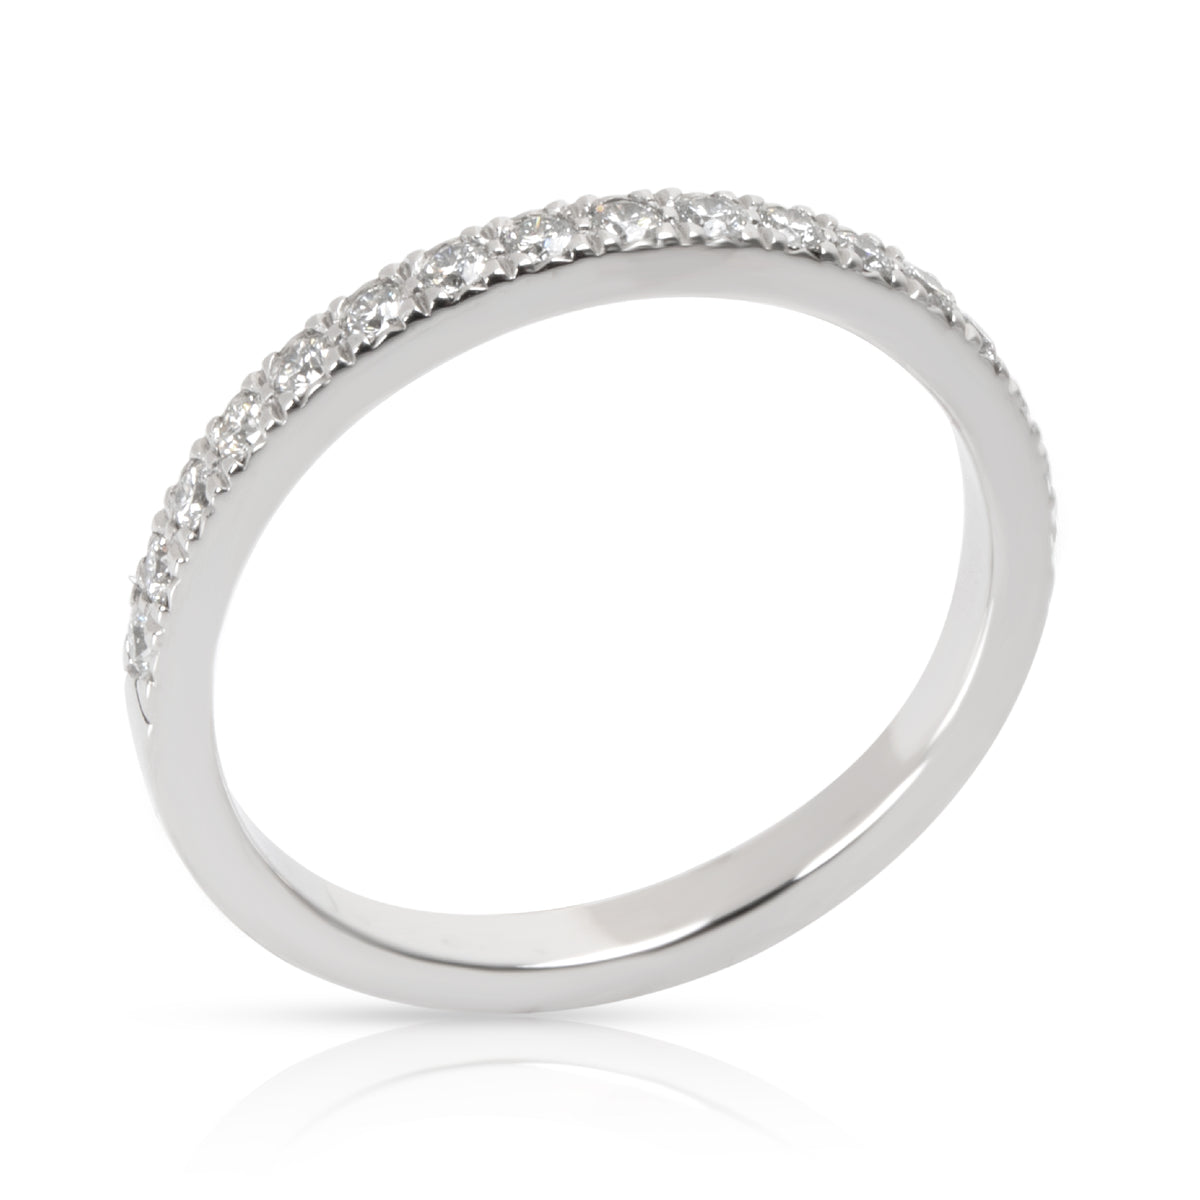 Tiffany & Co. Novo Diamond Wedding Band in Platinum 0.25 CTW